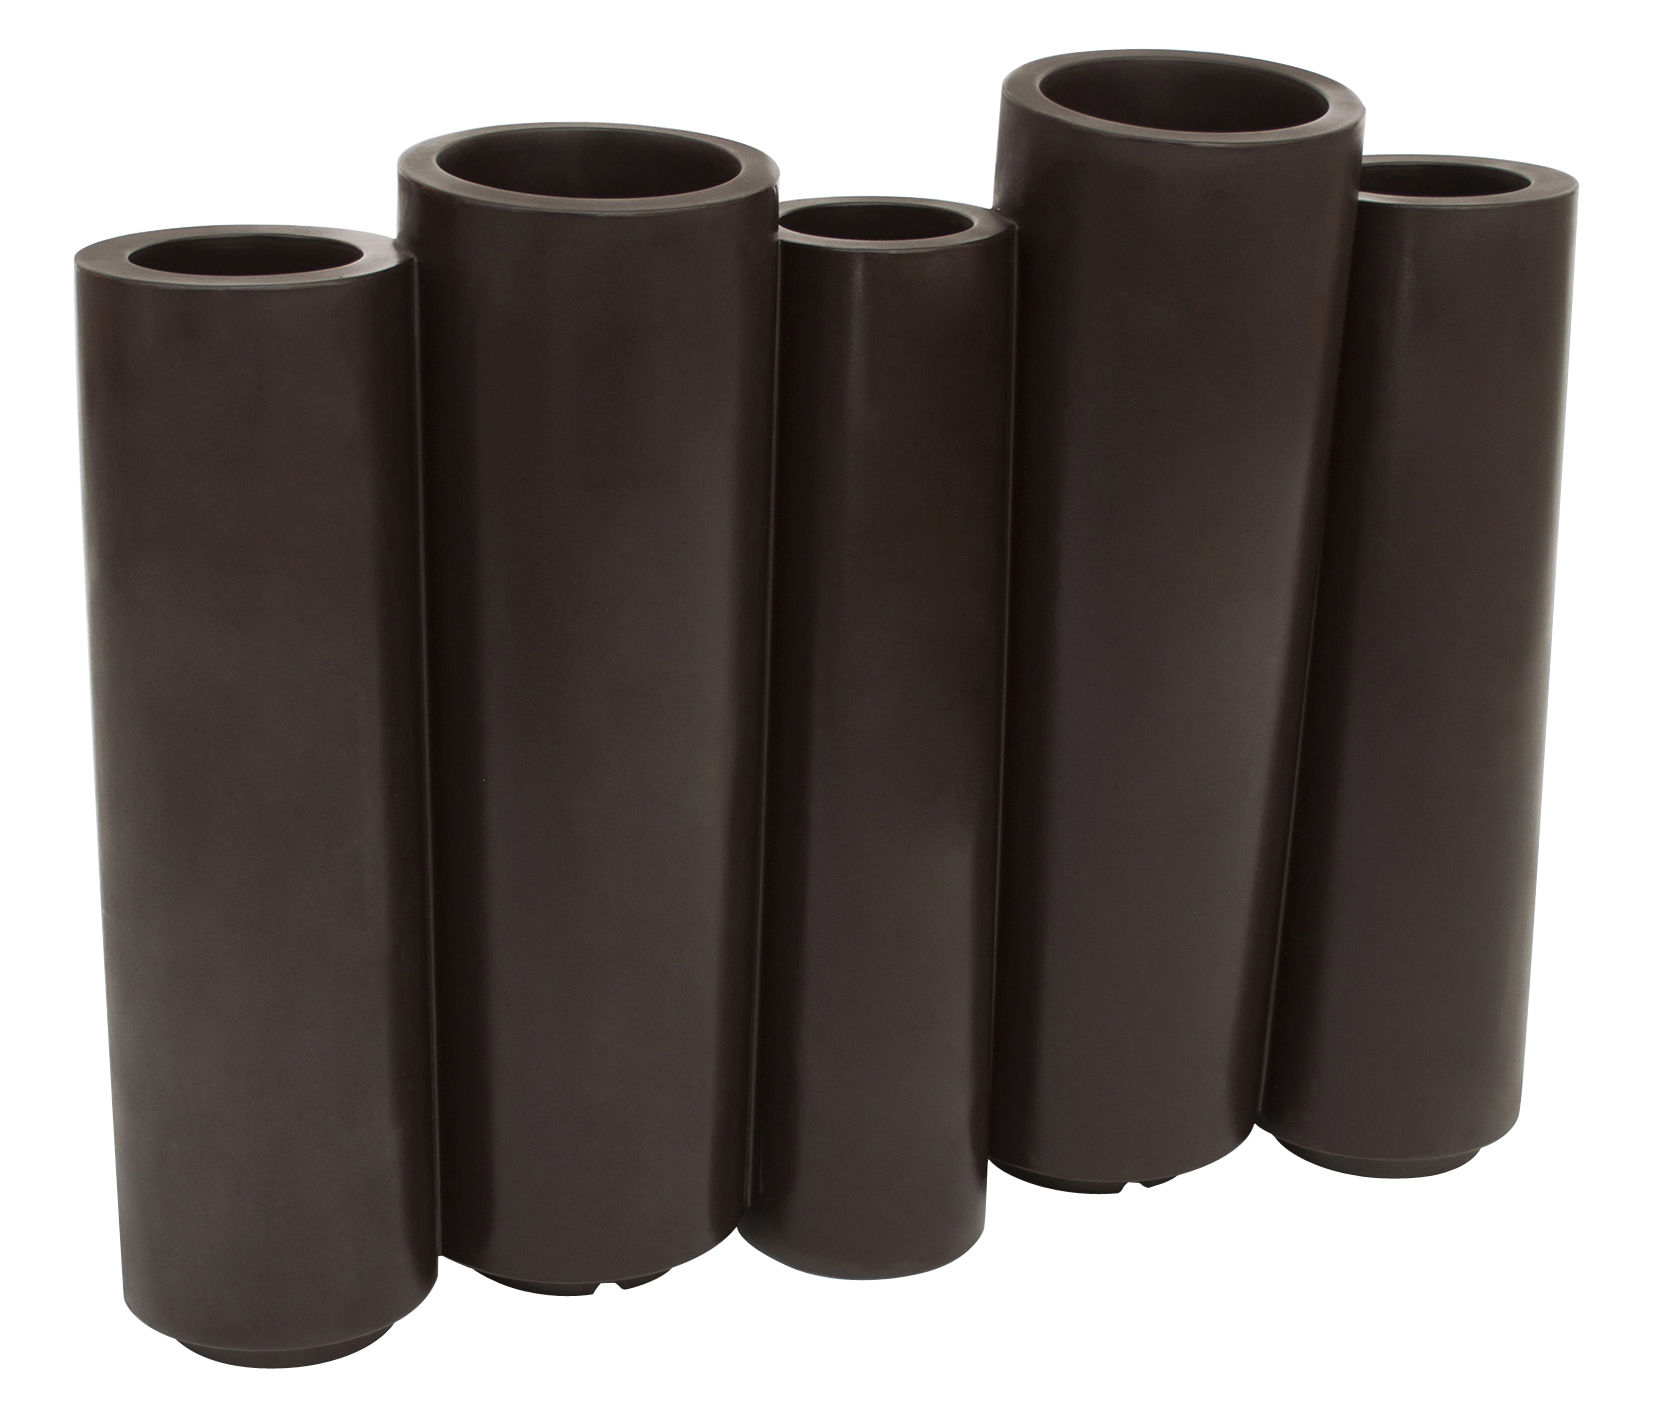 Outdoor - Pots & Plants - Bamboo Flowerpot - L 100 x H 80 cm by Slide - Chocolate - recyclable polyethylene